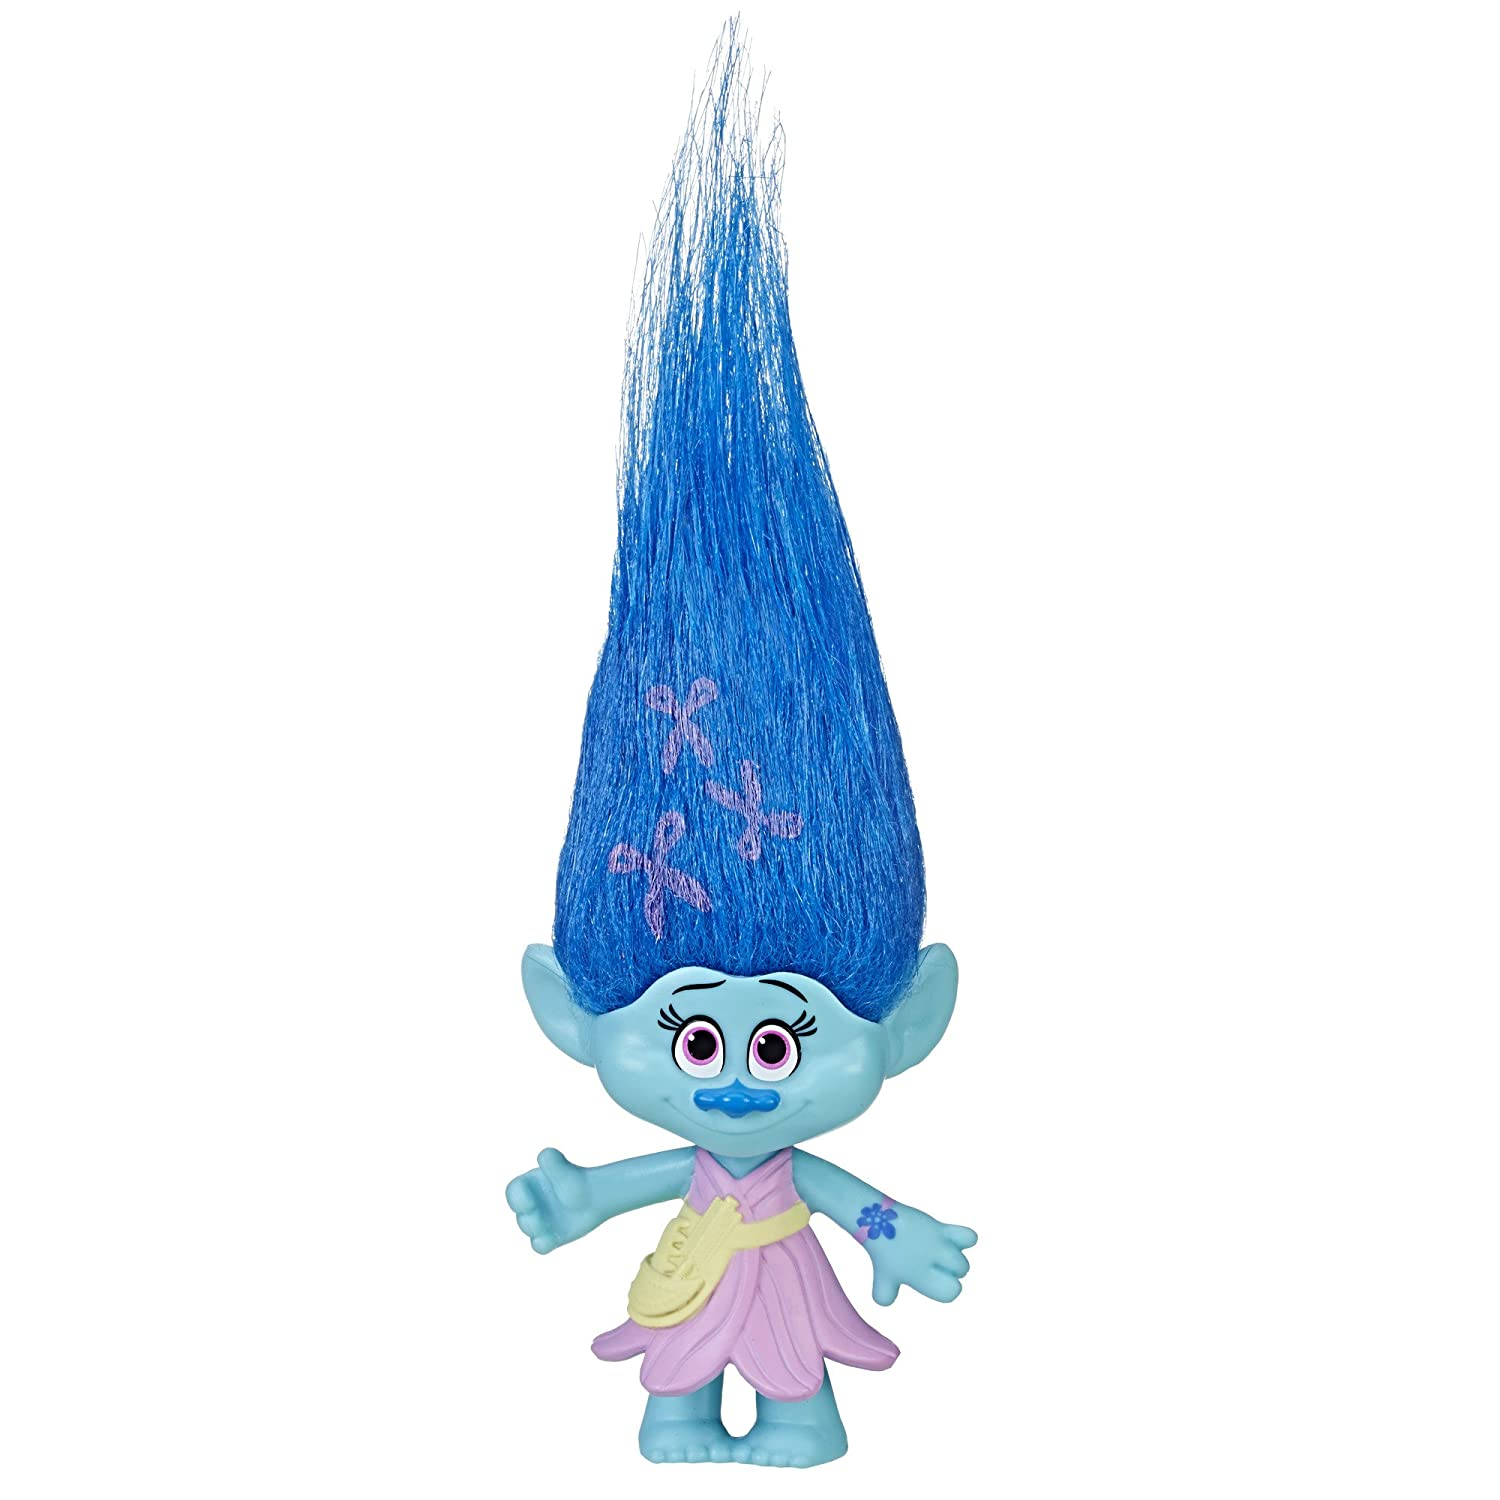 Trolls DreamWorks Maddy Collectible Figure with Printed Hair Hasbro C3426